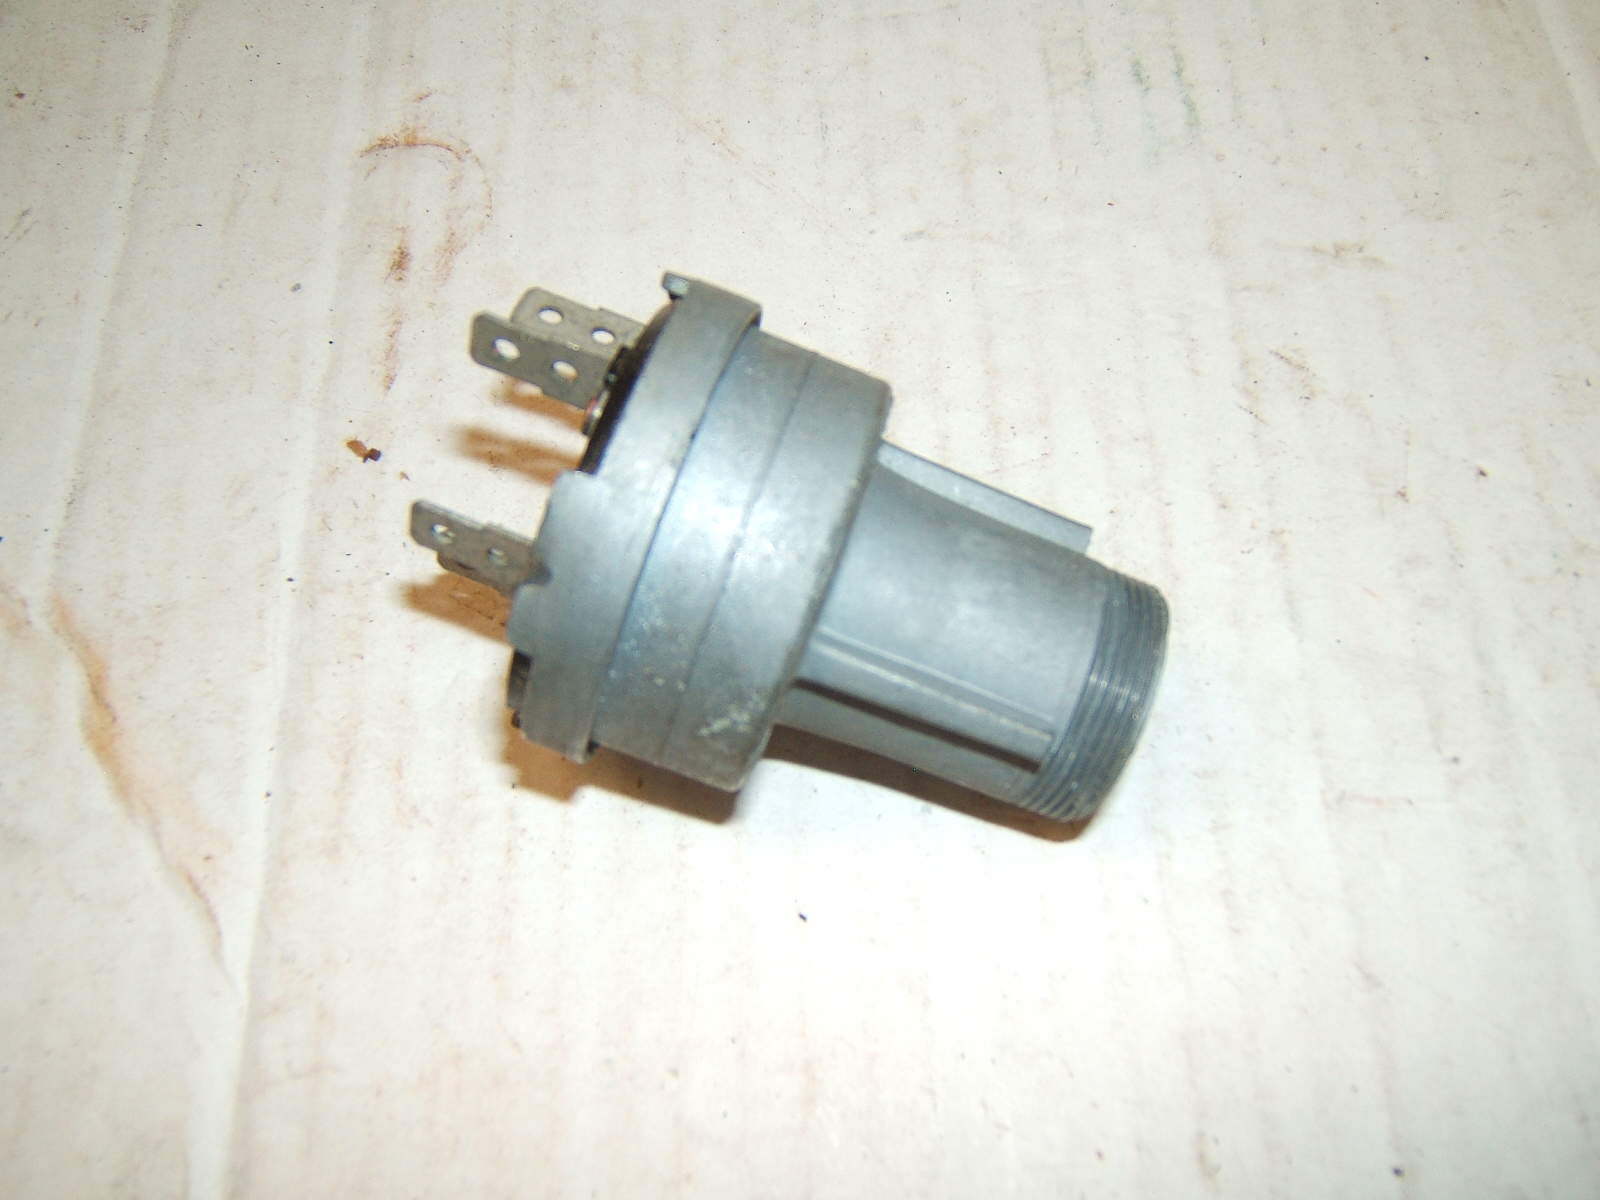 1962 1963 1964 1965 Chevy II Nova ignition switch gm # 1116626 (a 1116626)